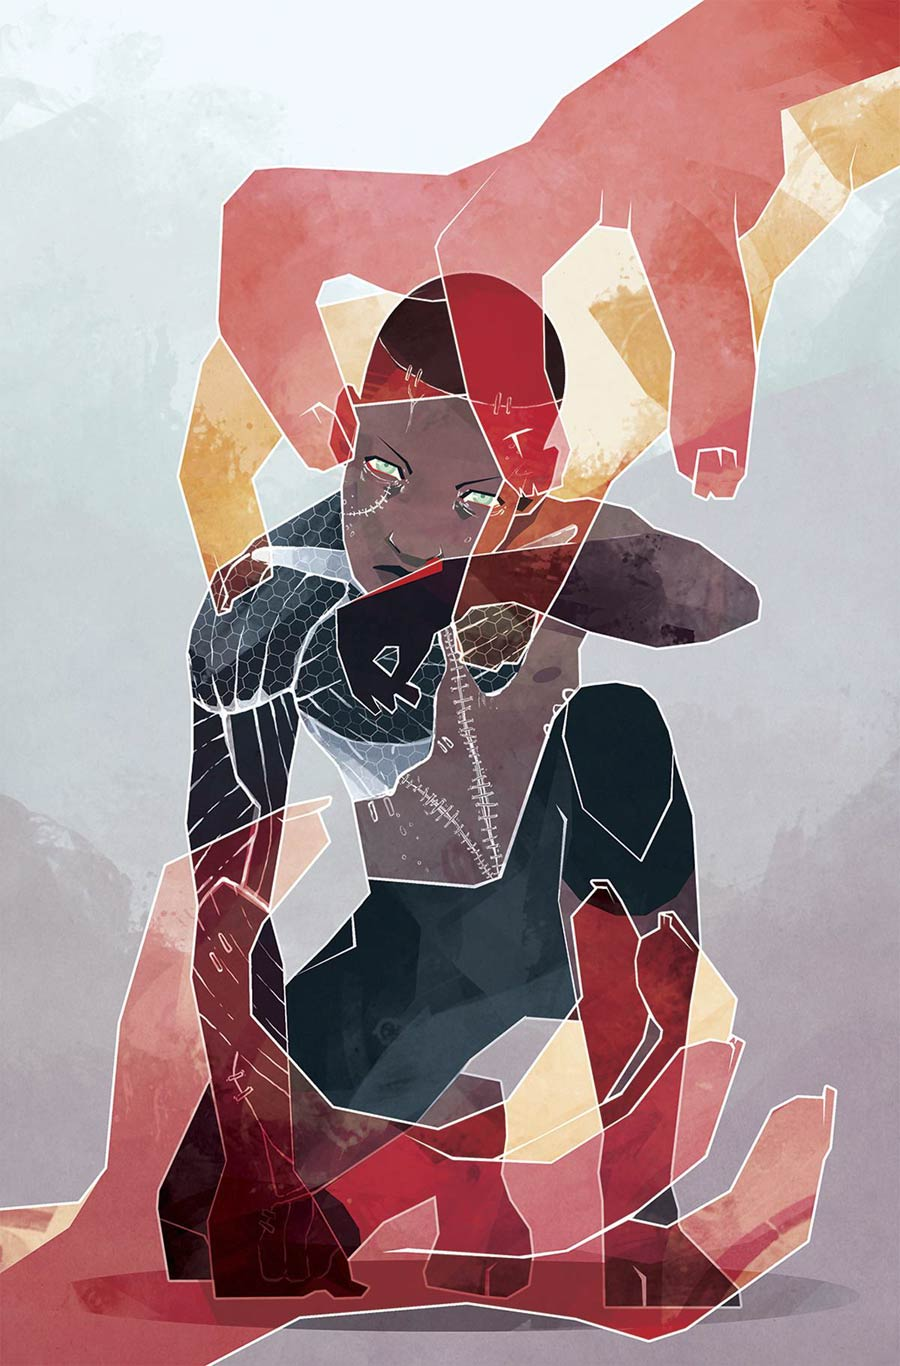 Victor LaValle's Destroyer #4, by Micaela Dawn. (BOOM! Studios)